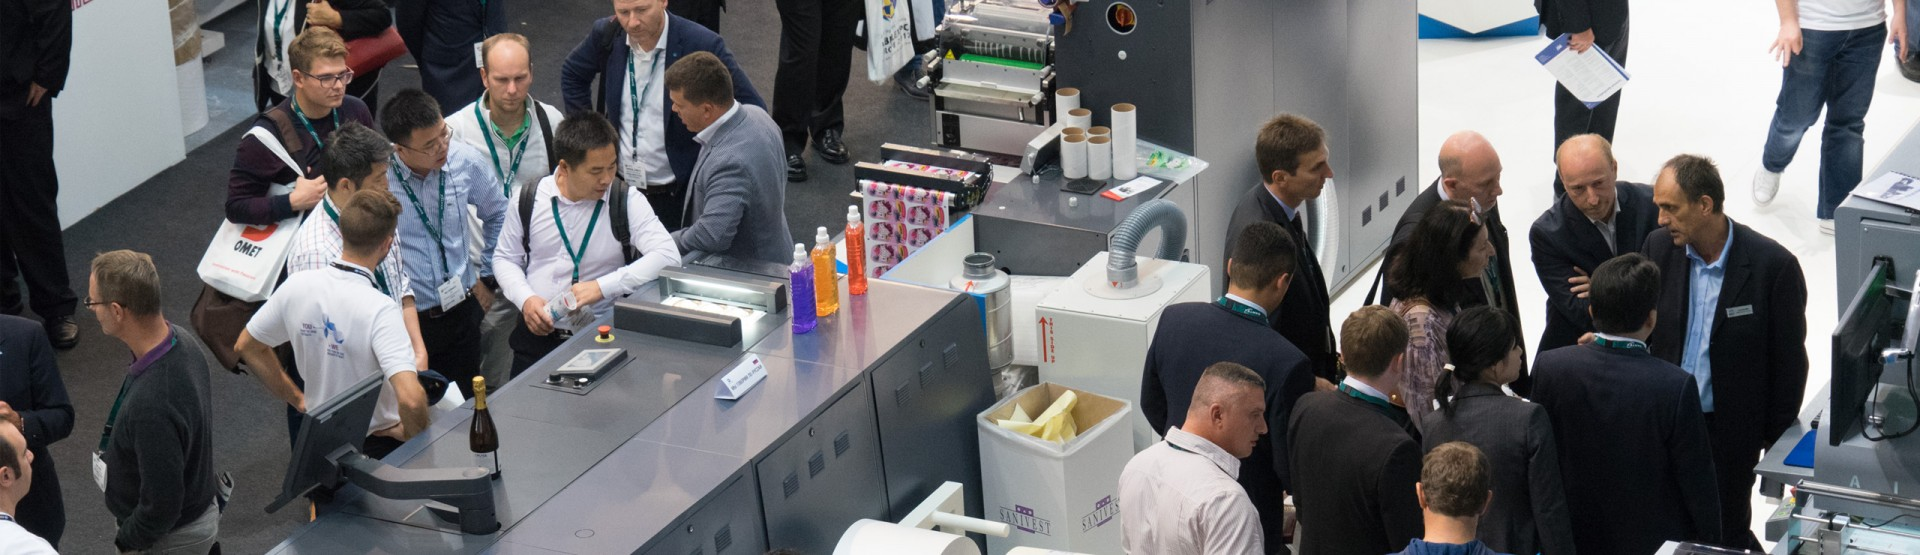 post_labelexpo_2017__2560x740